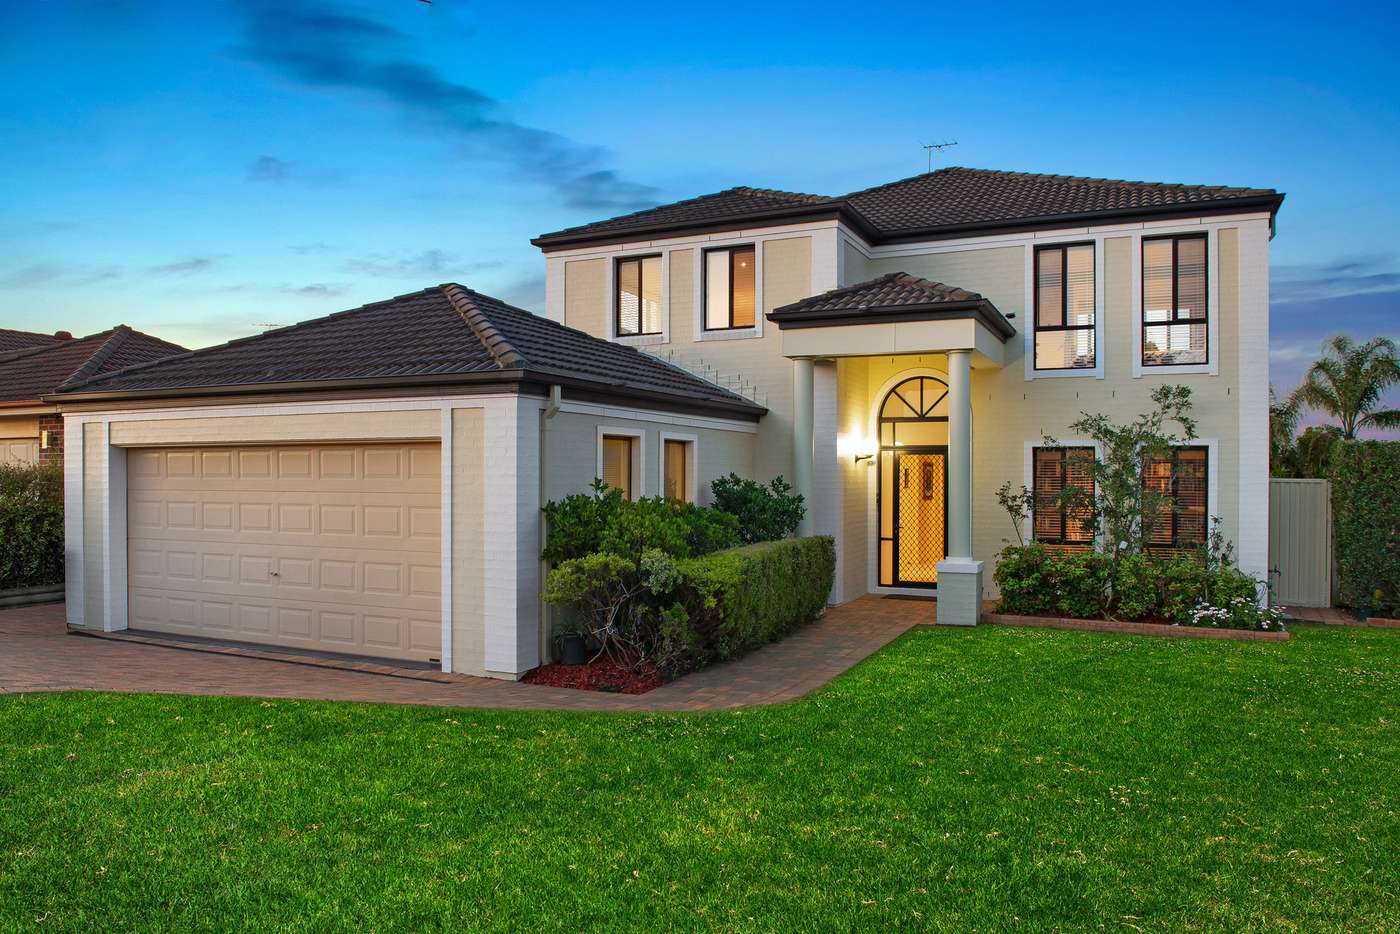 Main view of Homely house listing, 2 Alpine Way, Glenwood NSW 2768